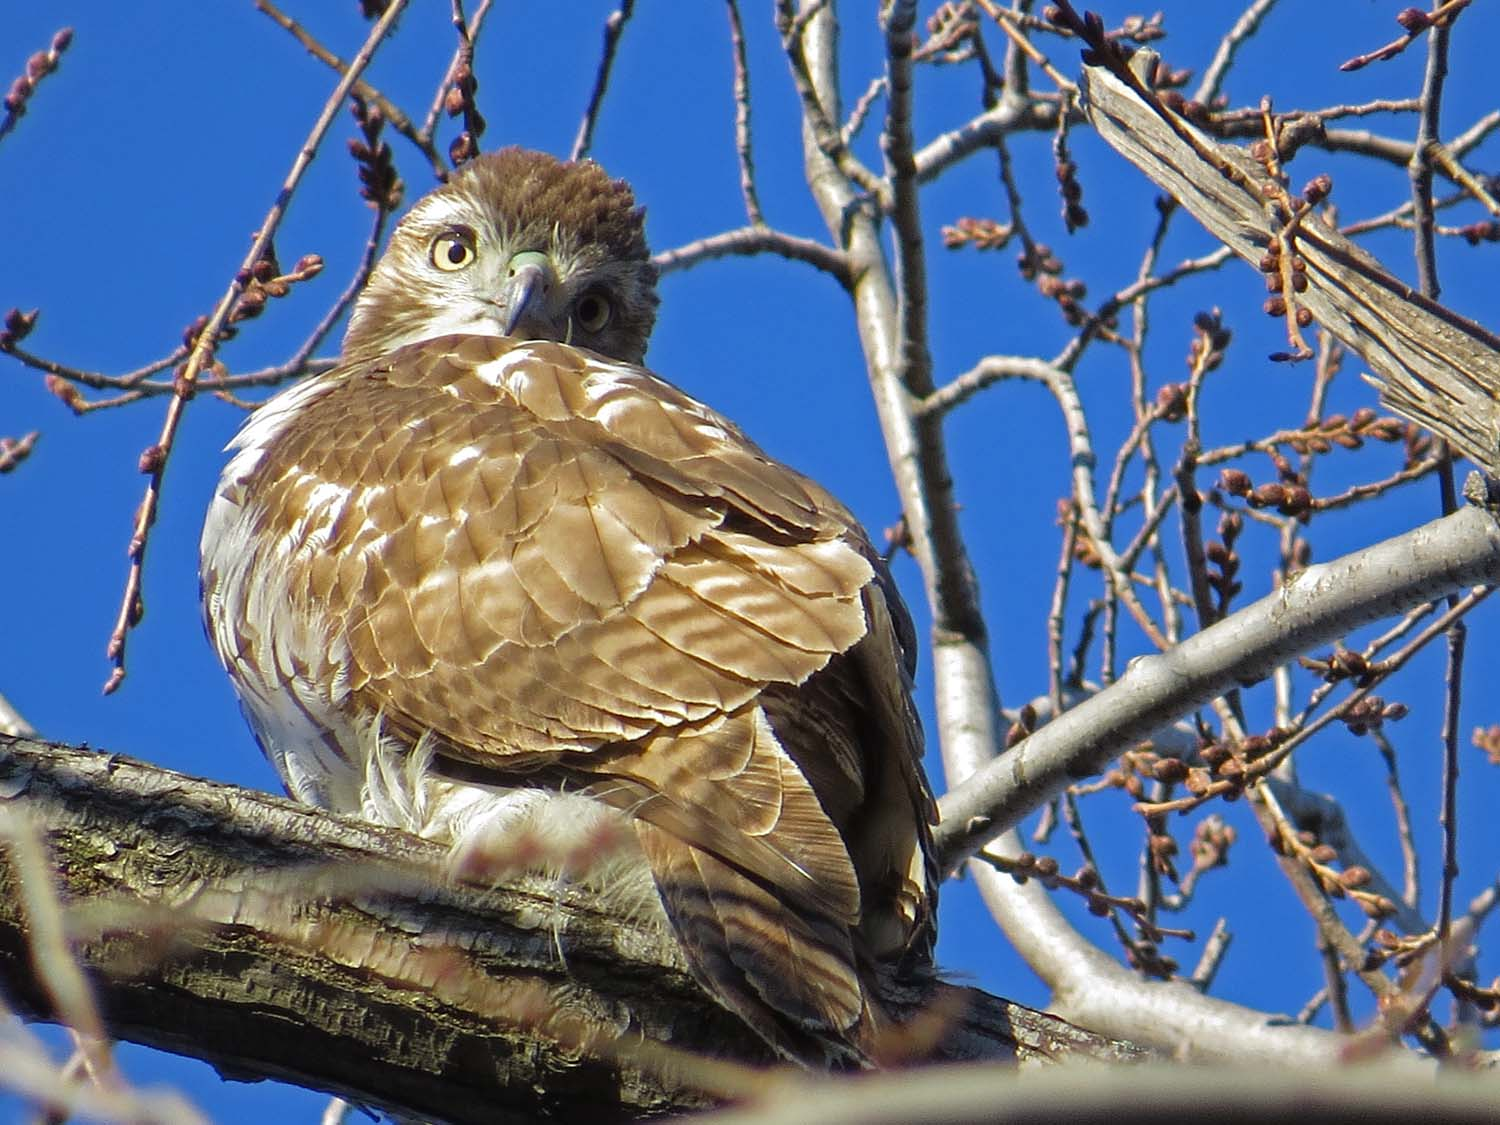 First-year red-tailed hawk, south of Bethesda Fountain, Jan. 1, 2017